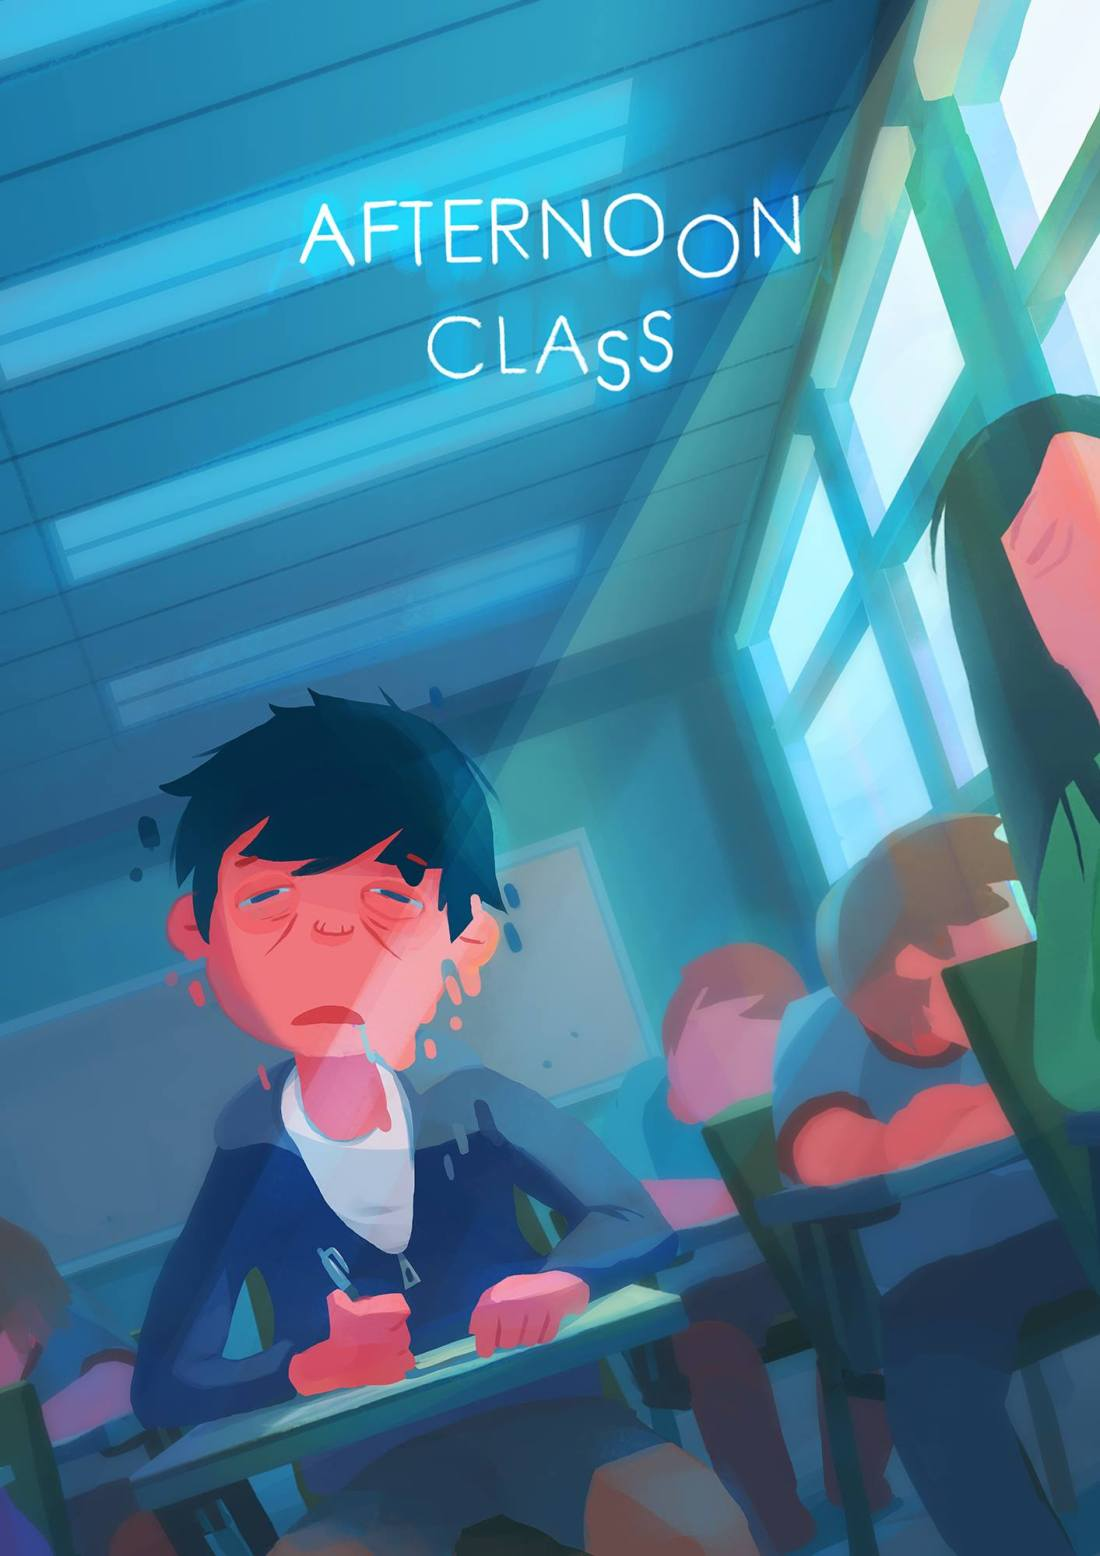 Afternoon Class Short Film Poster